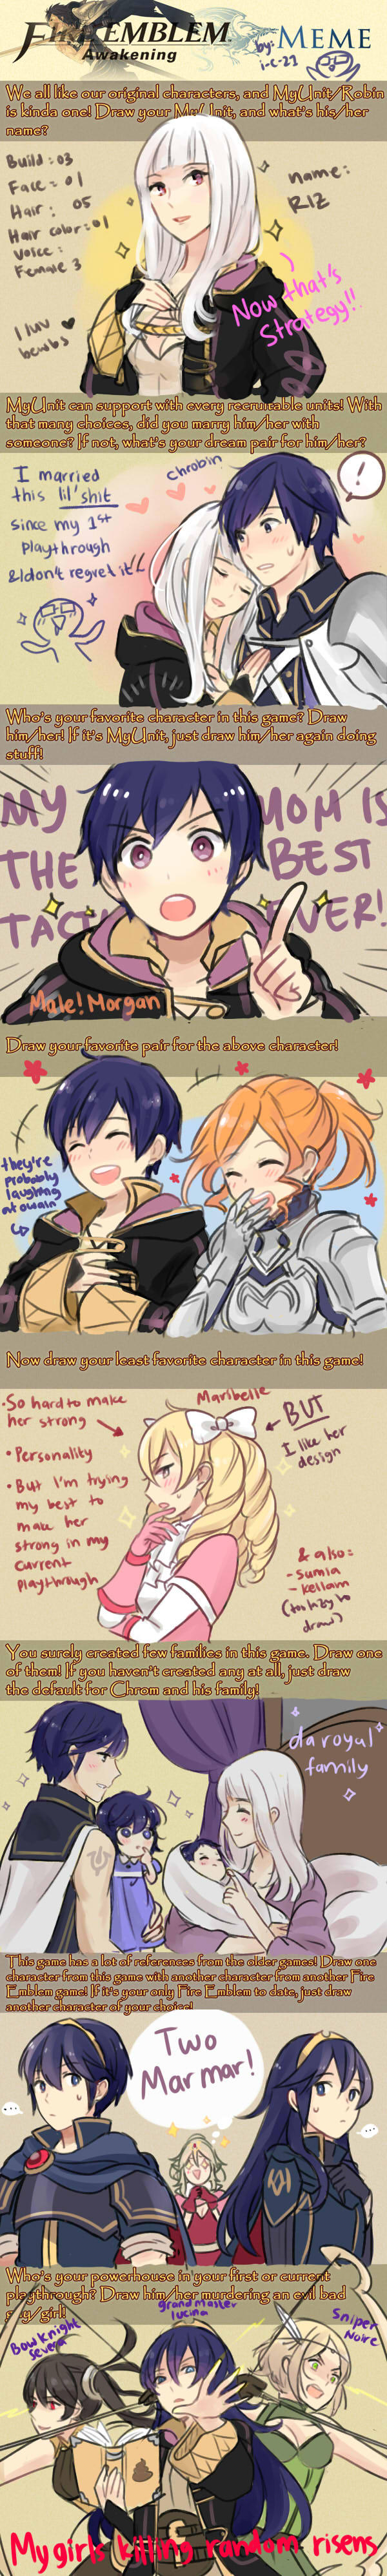 Fire Emblem: Awakening Meme by i-c-21